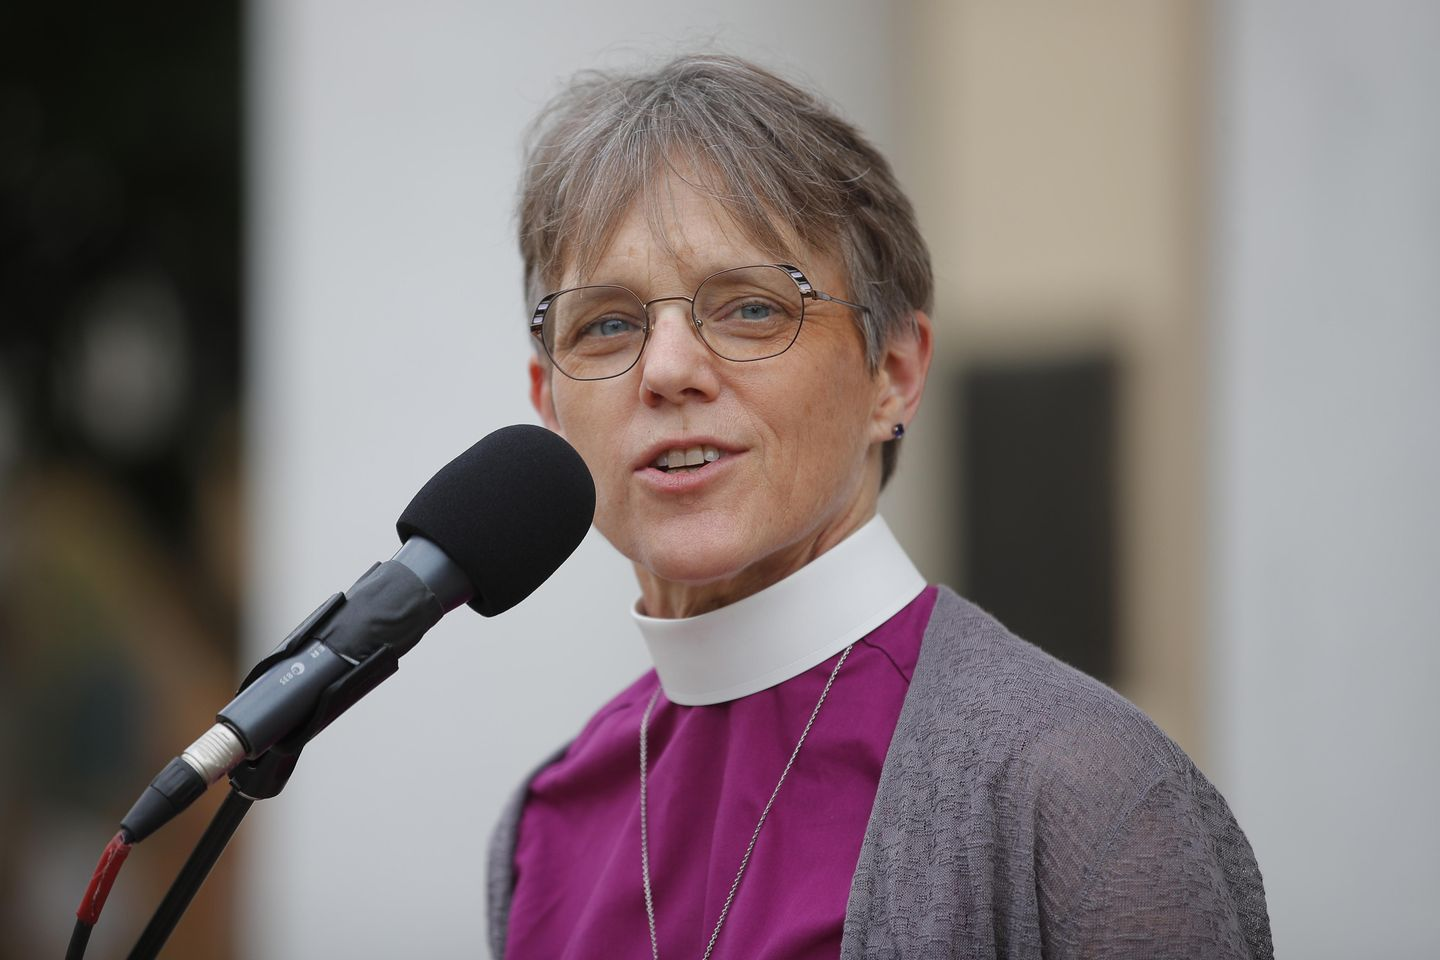 Mariann Edgar Budde, Episcopal bishop of Washington, D.C., to speak at DNC